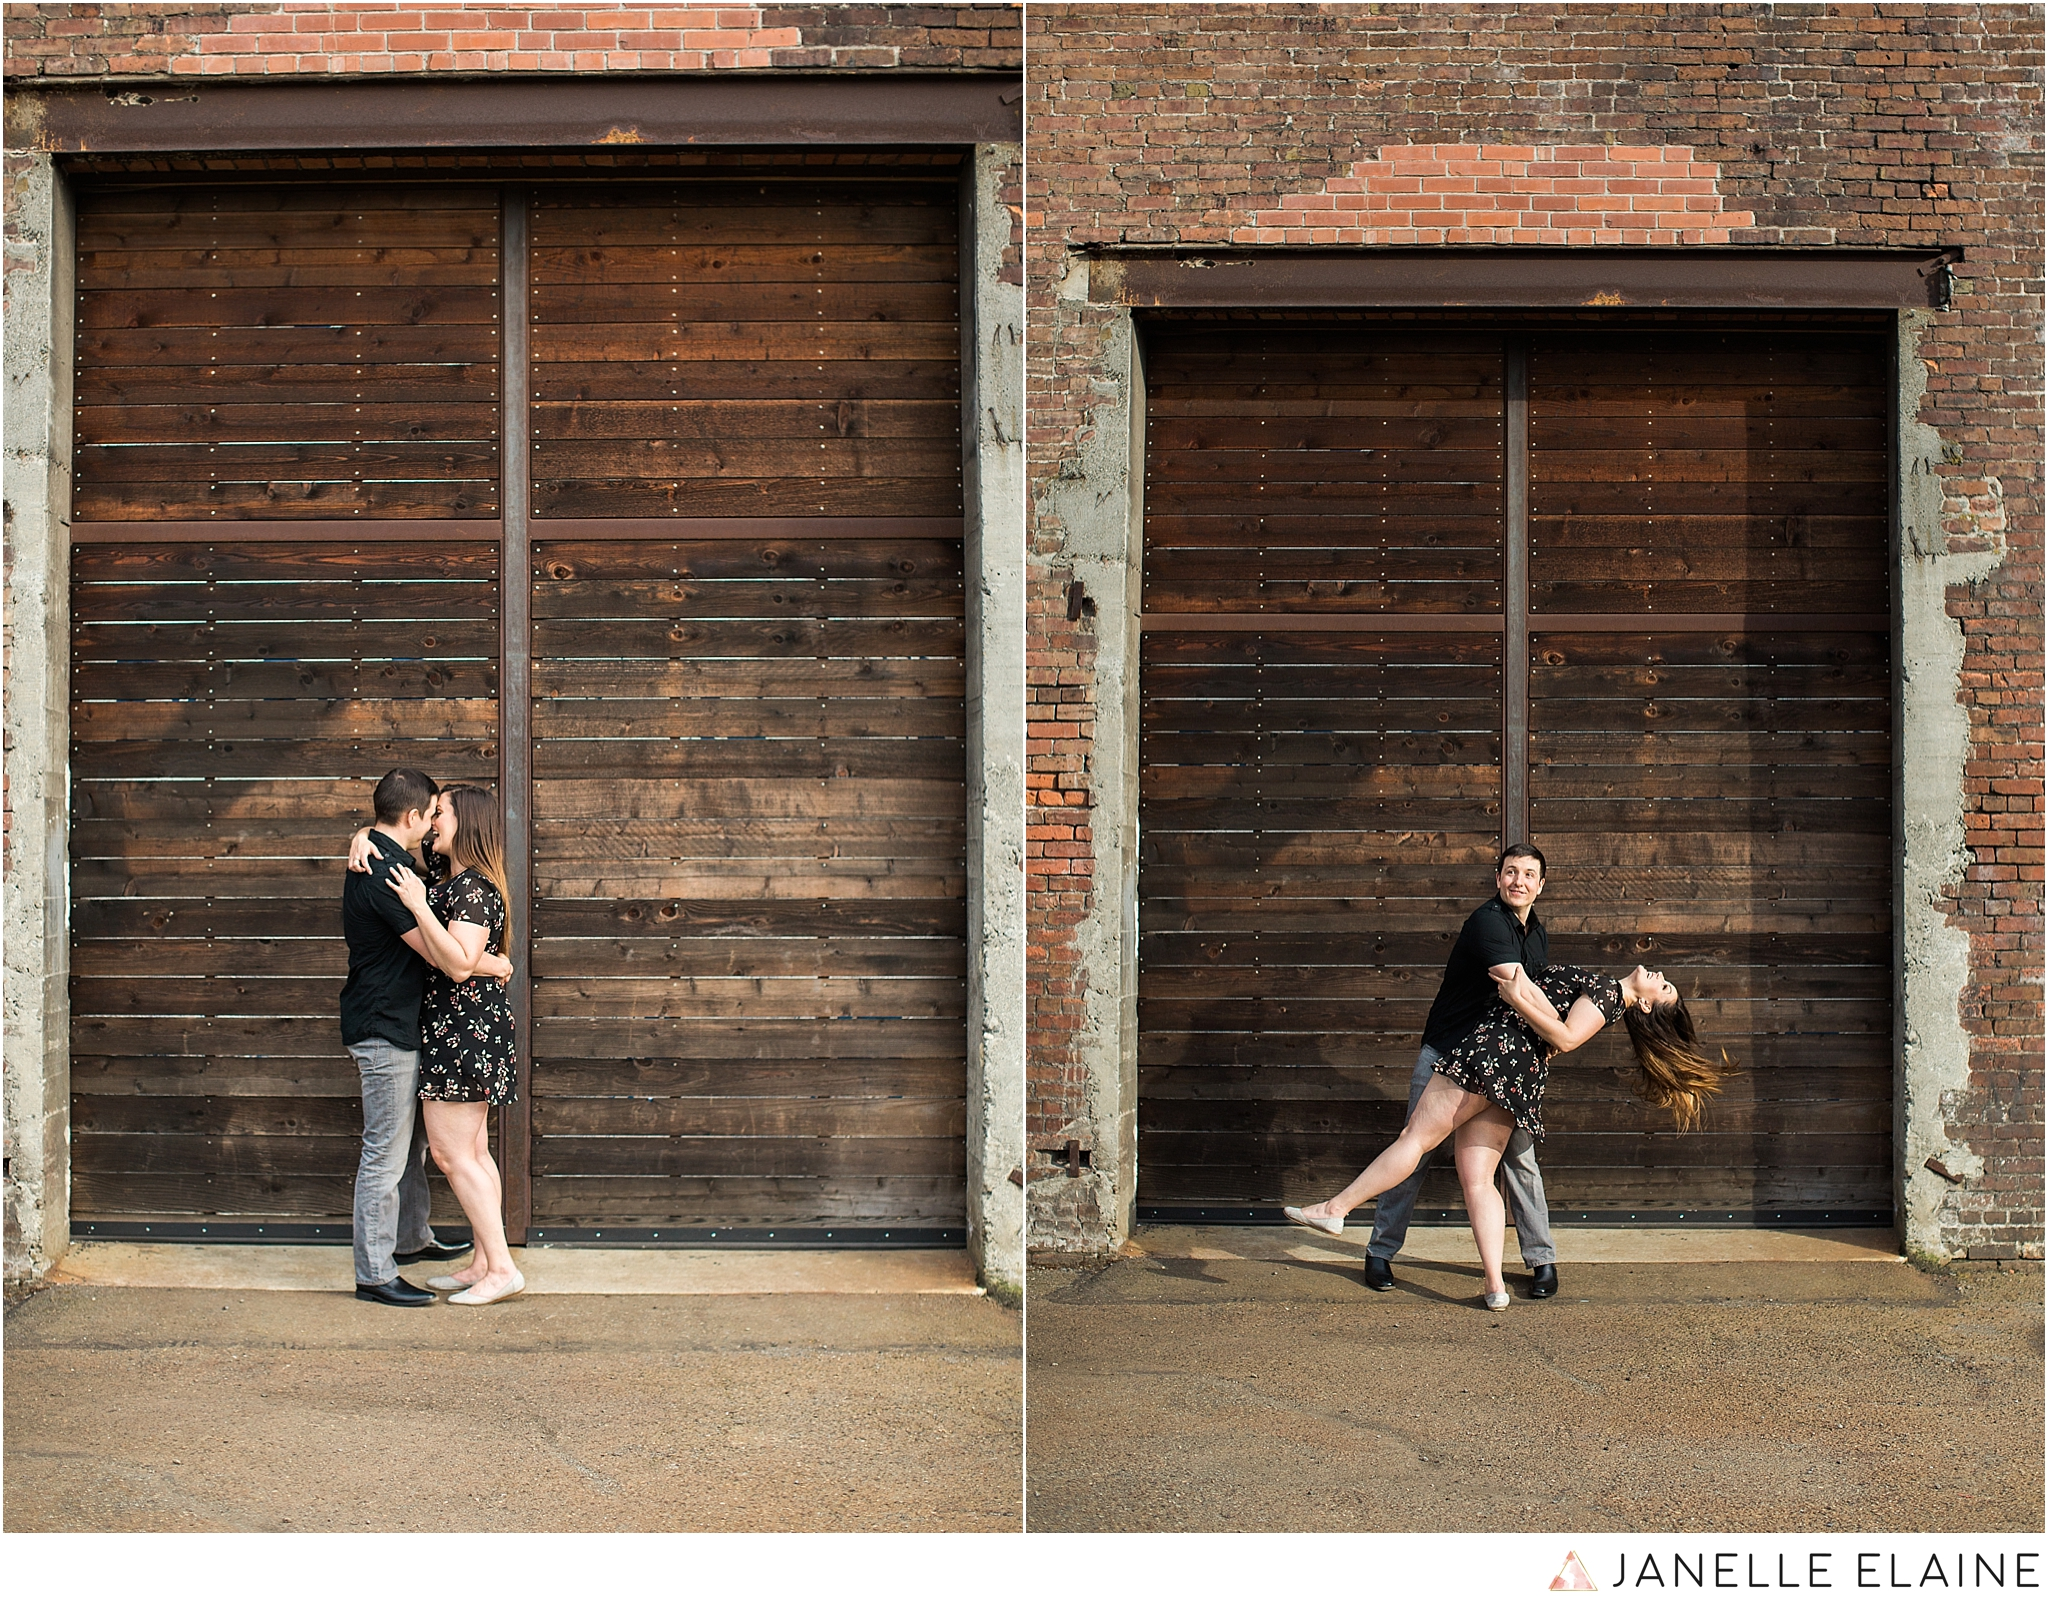 karen ethan-georgetown engagement photos-seattle-janelle elaine photography-96.jpg